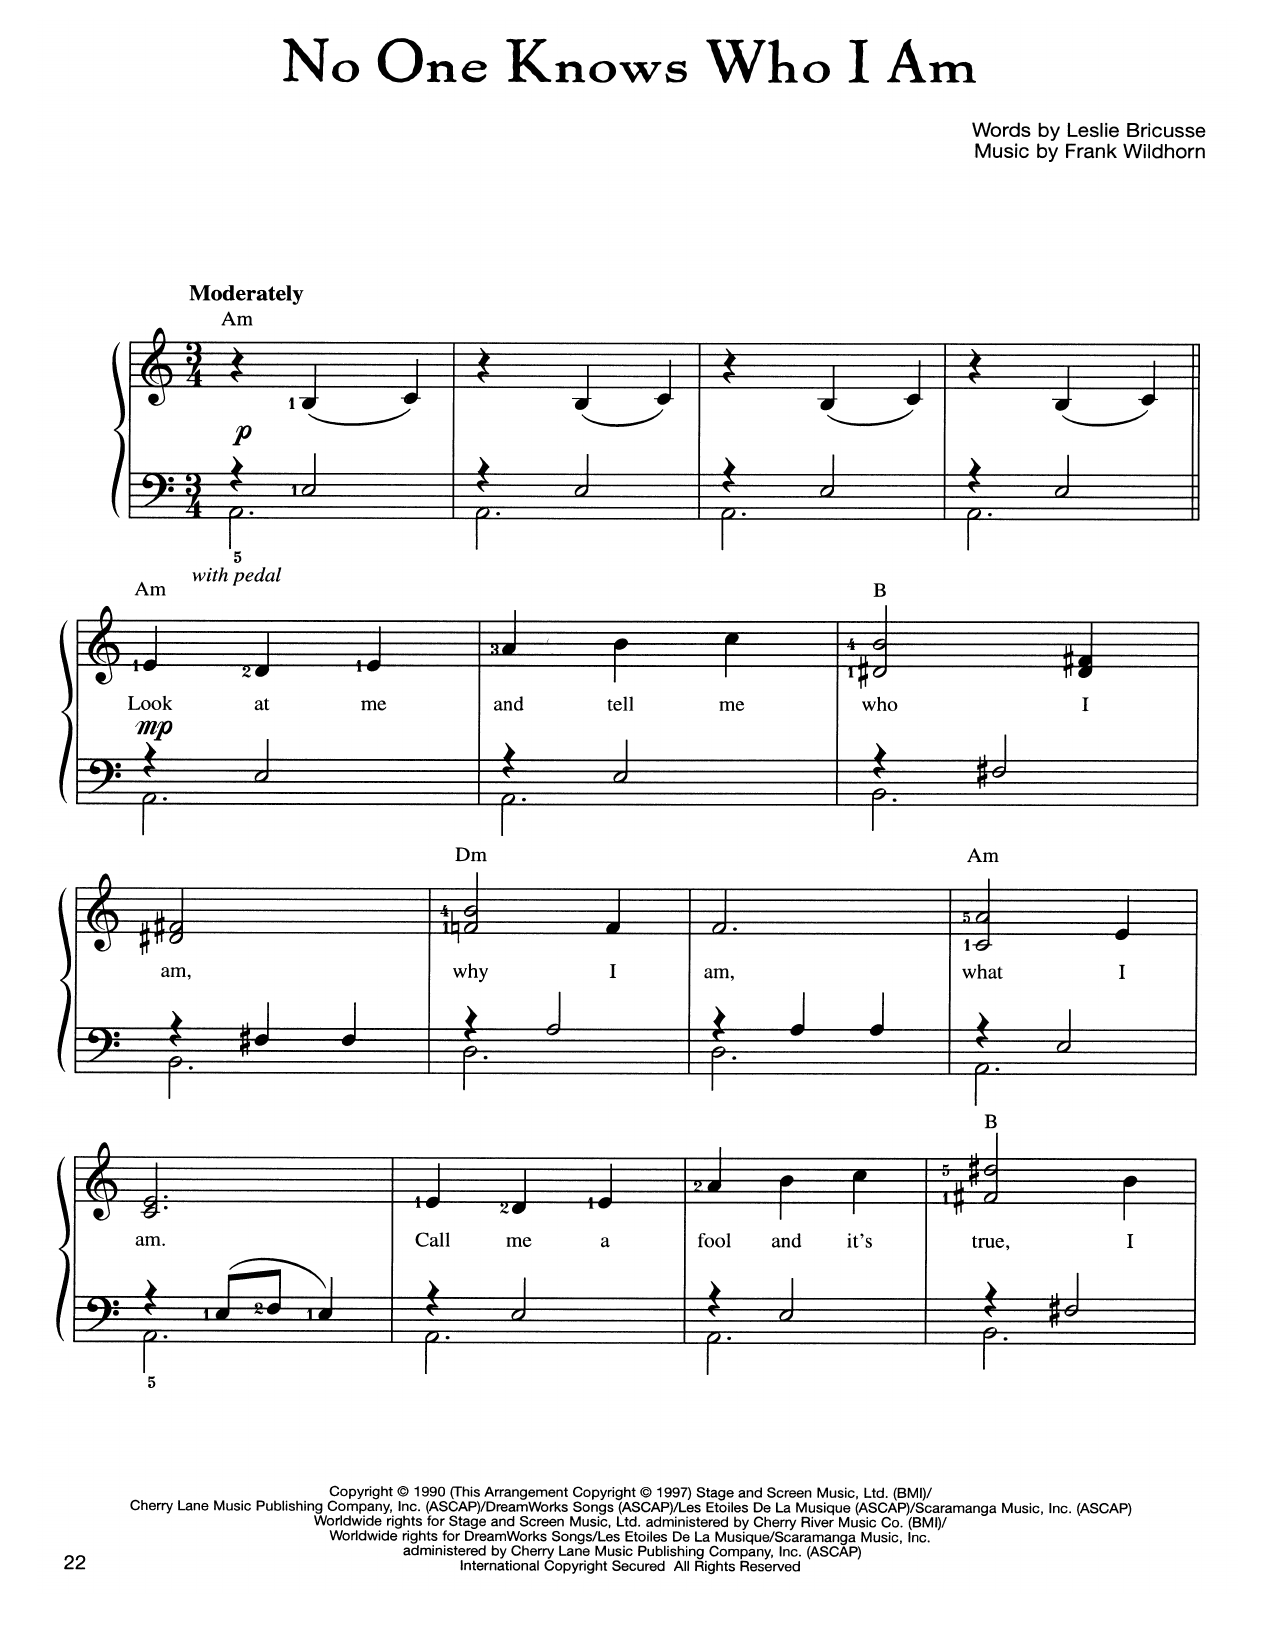 Frank Wildhorn No One Knows Who I Am sheet music notes and chords. Download Printable PDF.